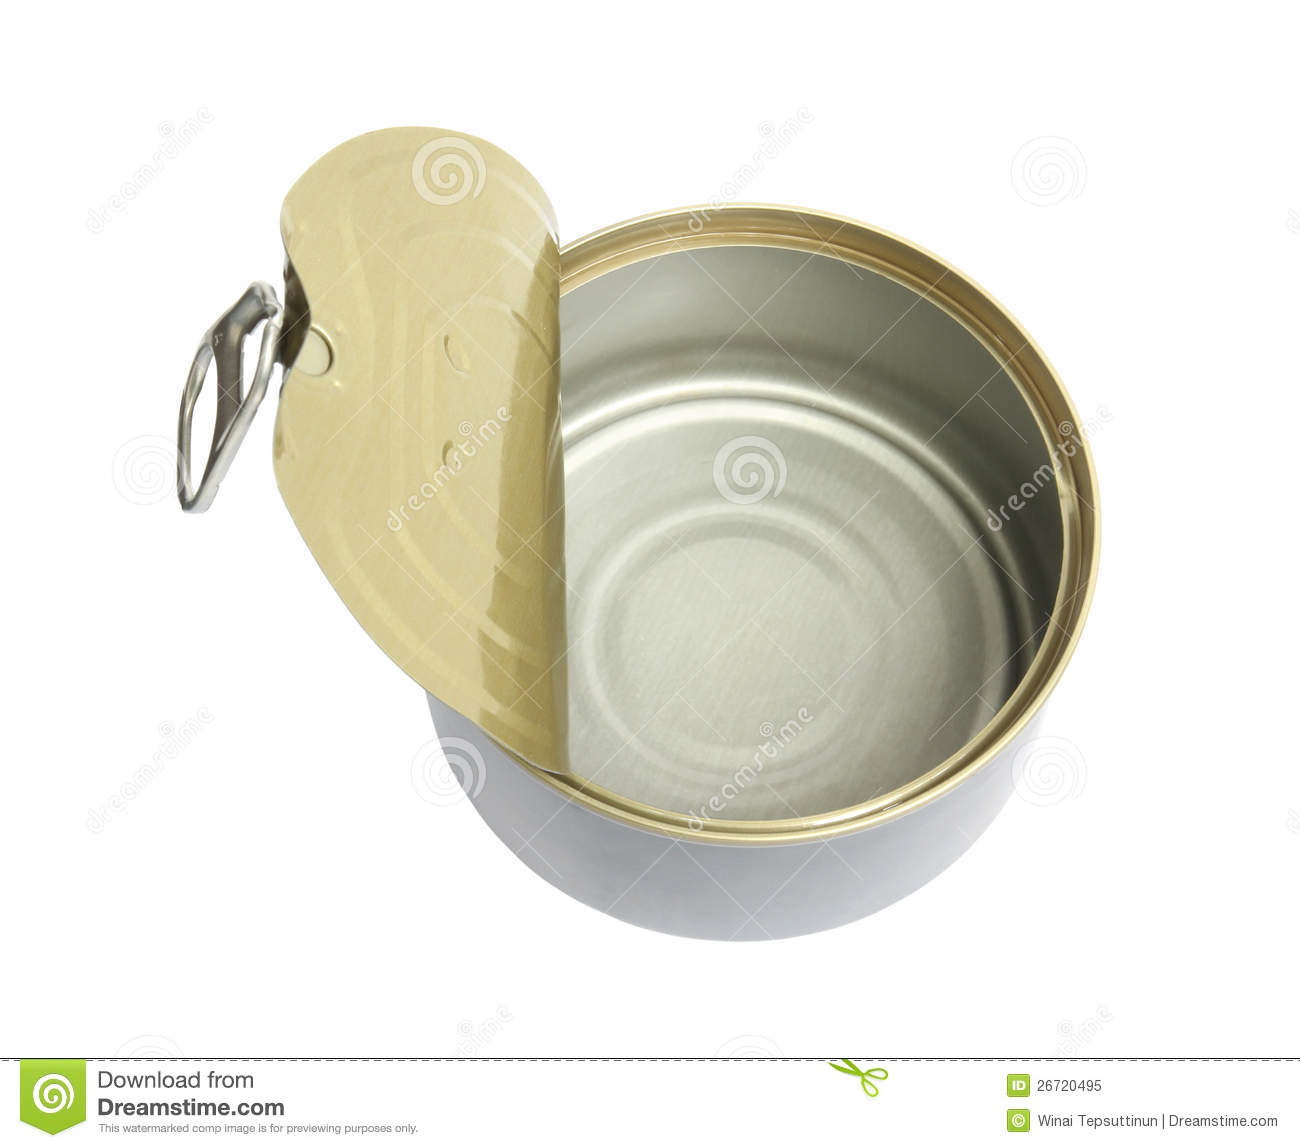 Empty can royalty free stock photo image 26720495 for Empty sardine cans